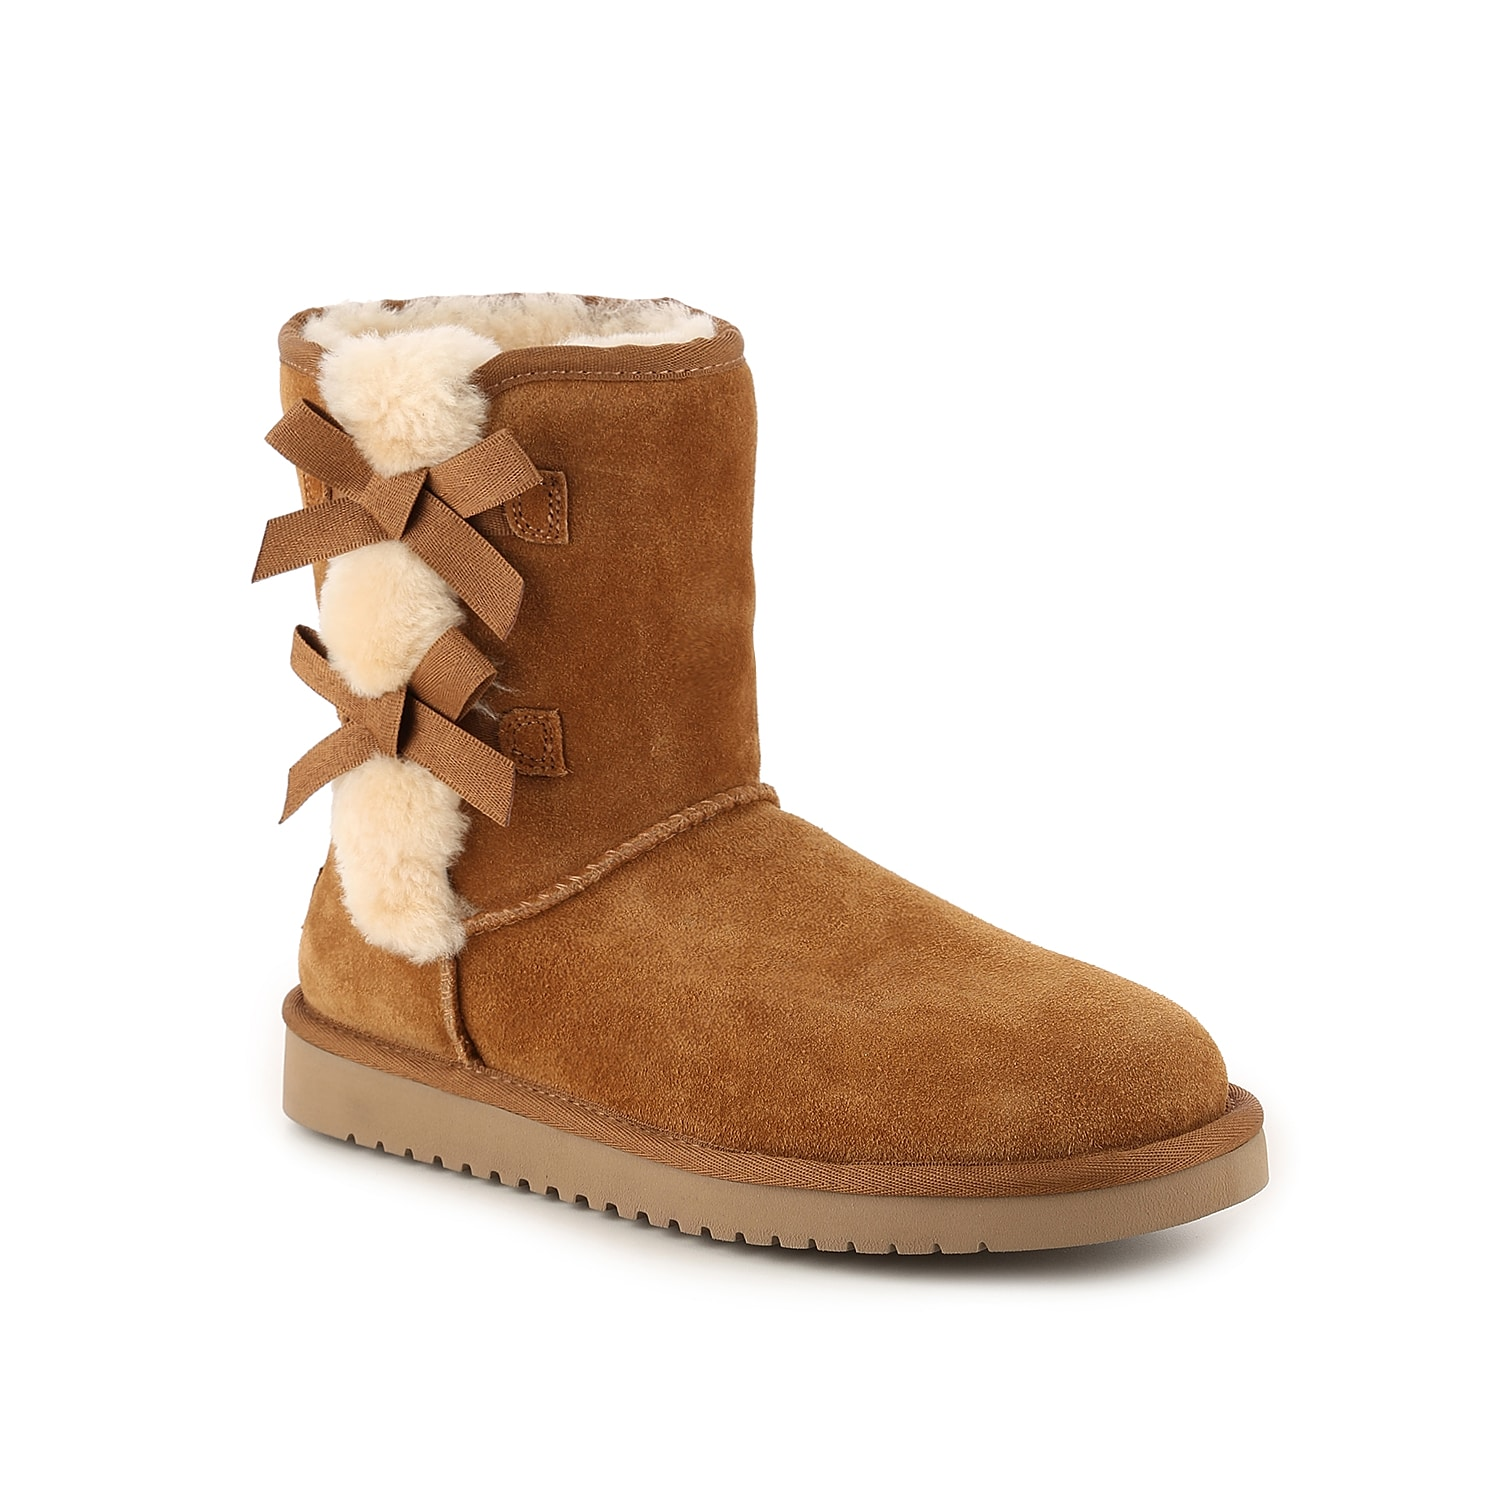 Stay warm and cozy all season long in these suede shearling booties from Koolaburra by Ugg. Pull on the Victoria Short winter boot over jeans or leggings for a comfy look.Click here for Boot Measuring Guide.